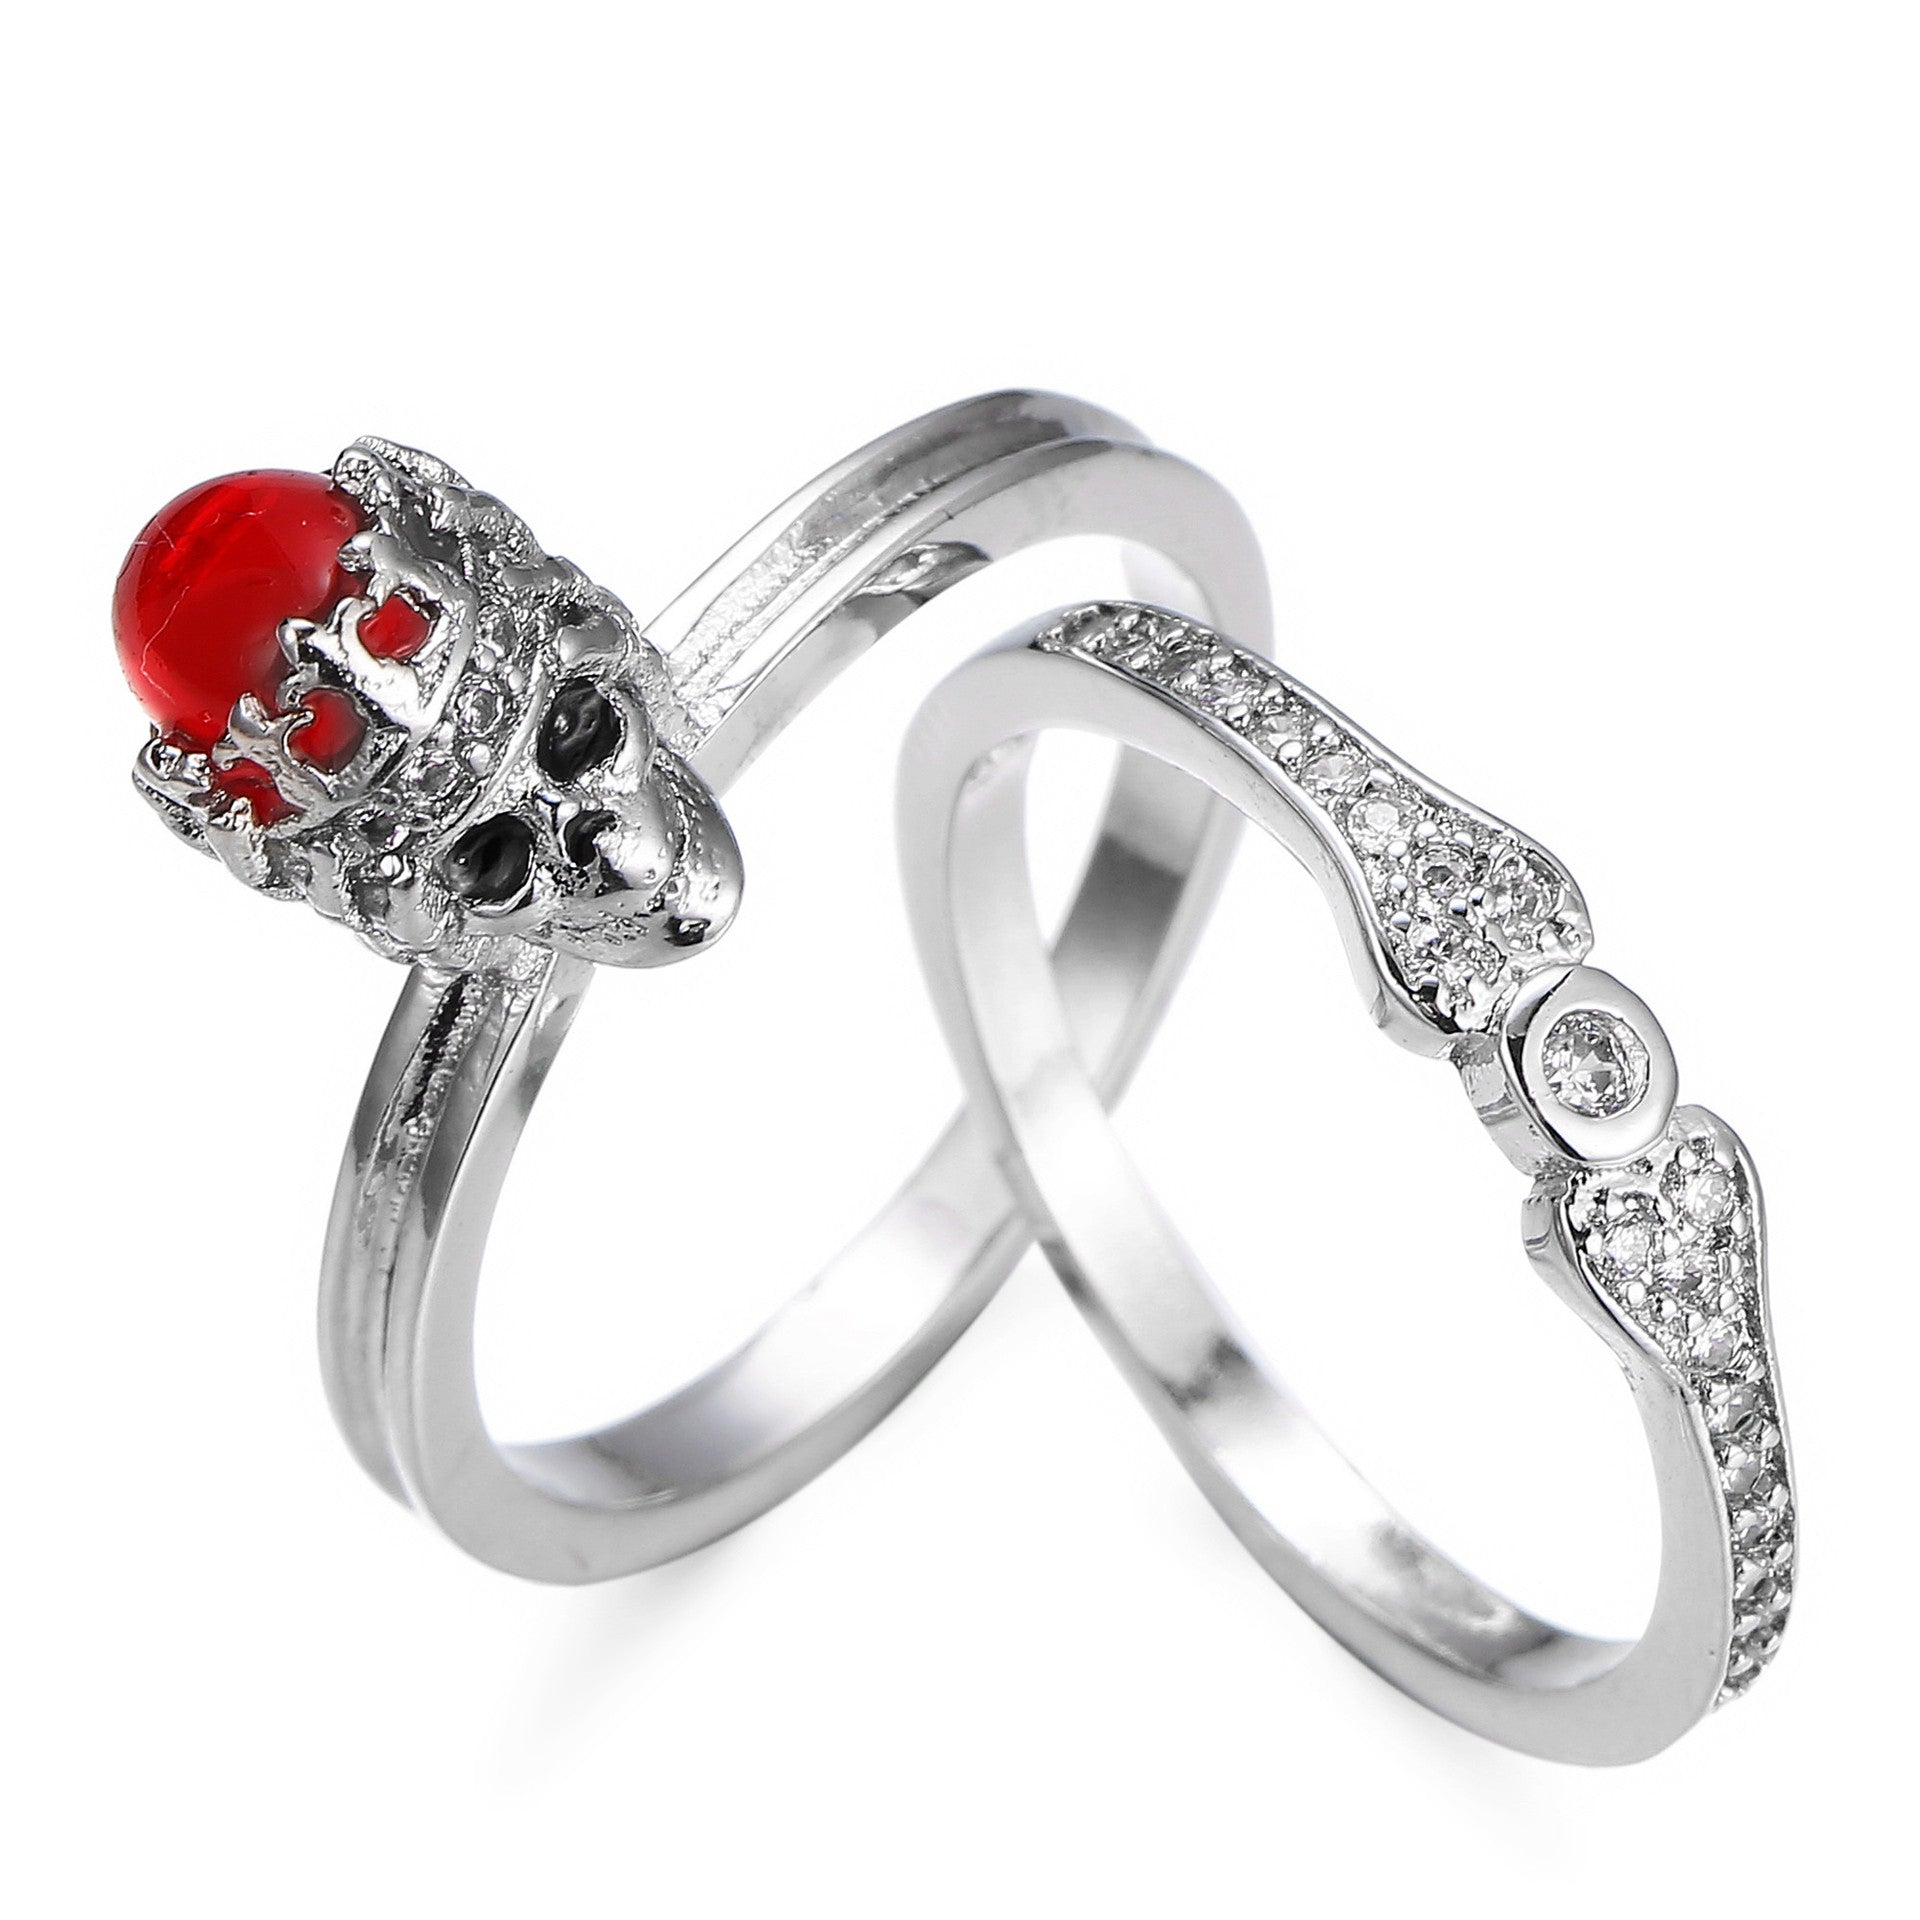 Vintage Crystal Red Skull Crown Ring - 35% OFF + FREE SHIPPING